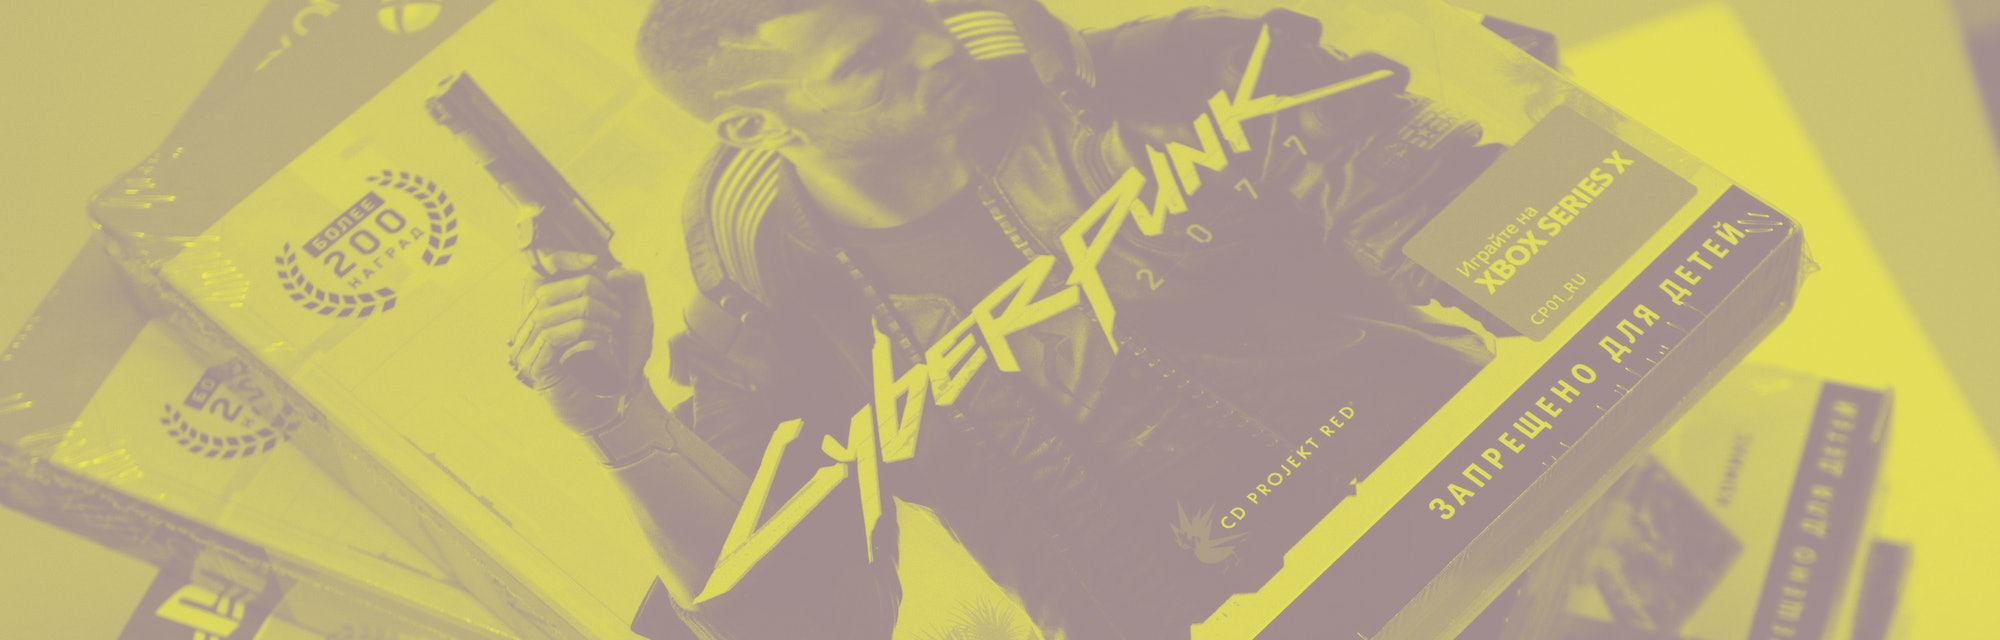 Multiple physical copies of 'Cyberpunk 2077'